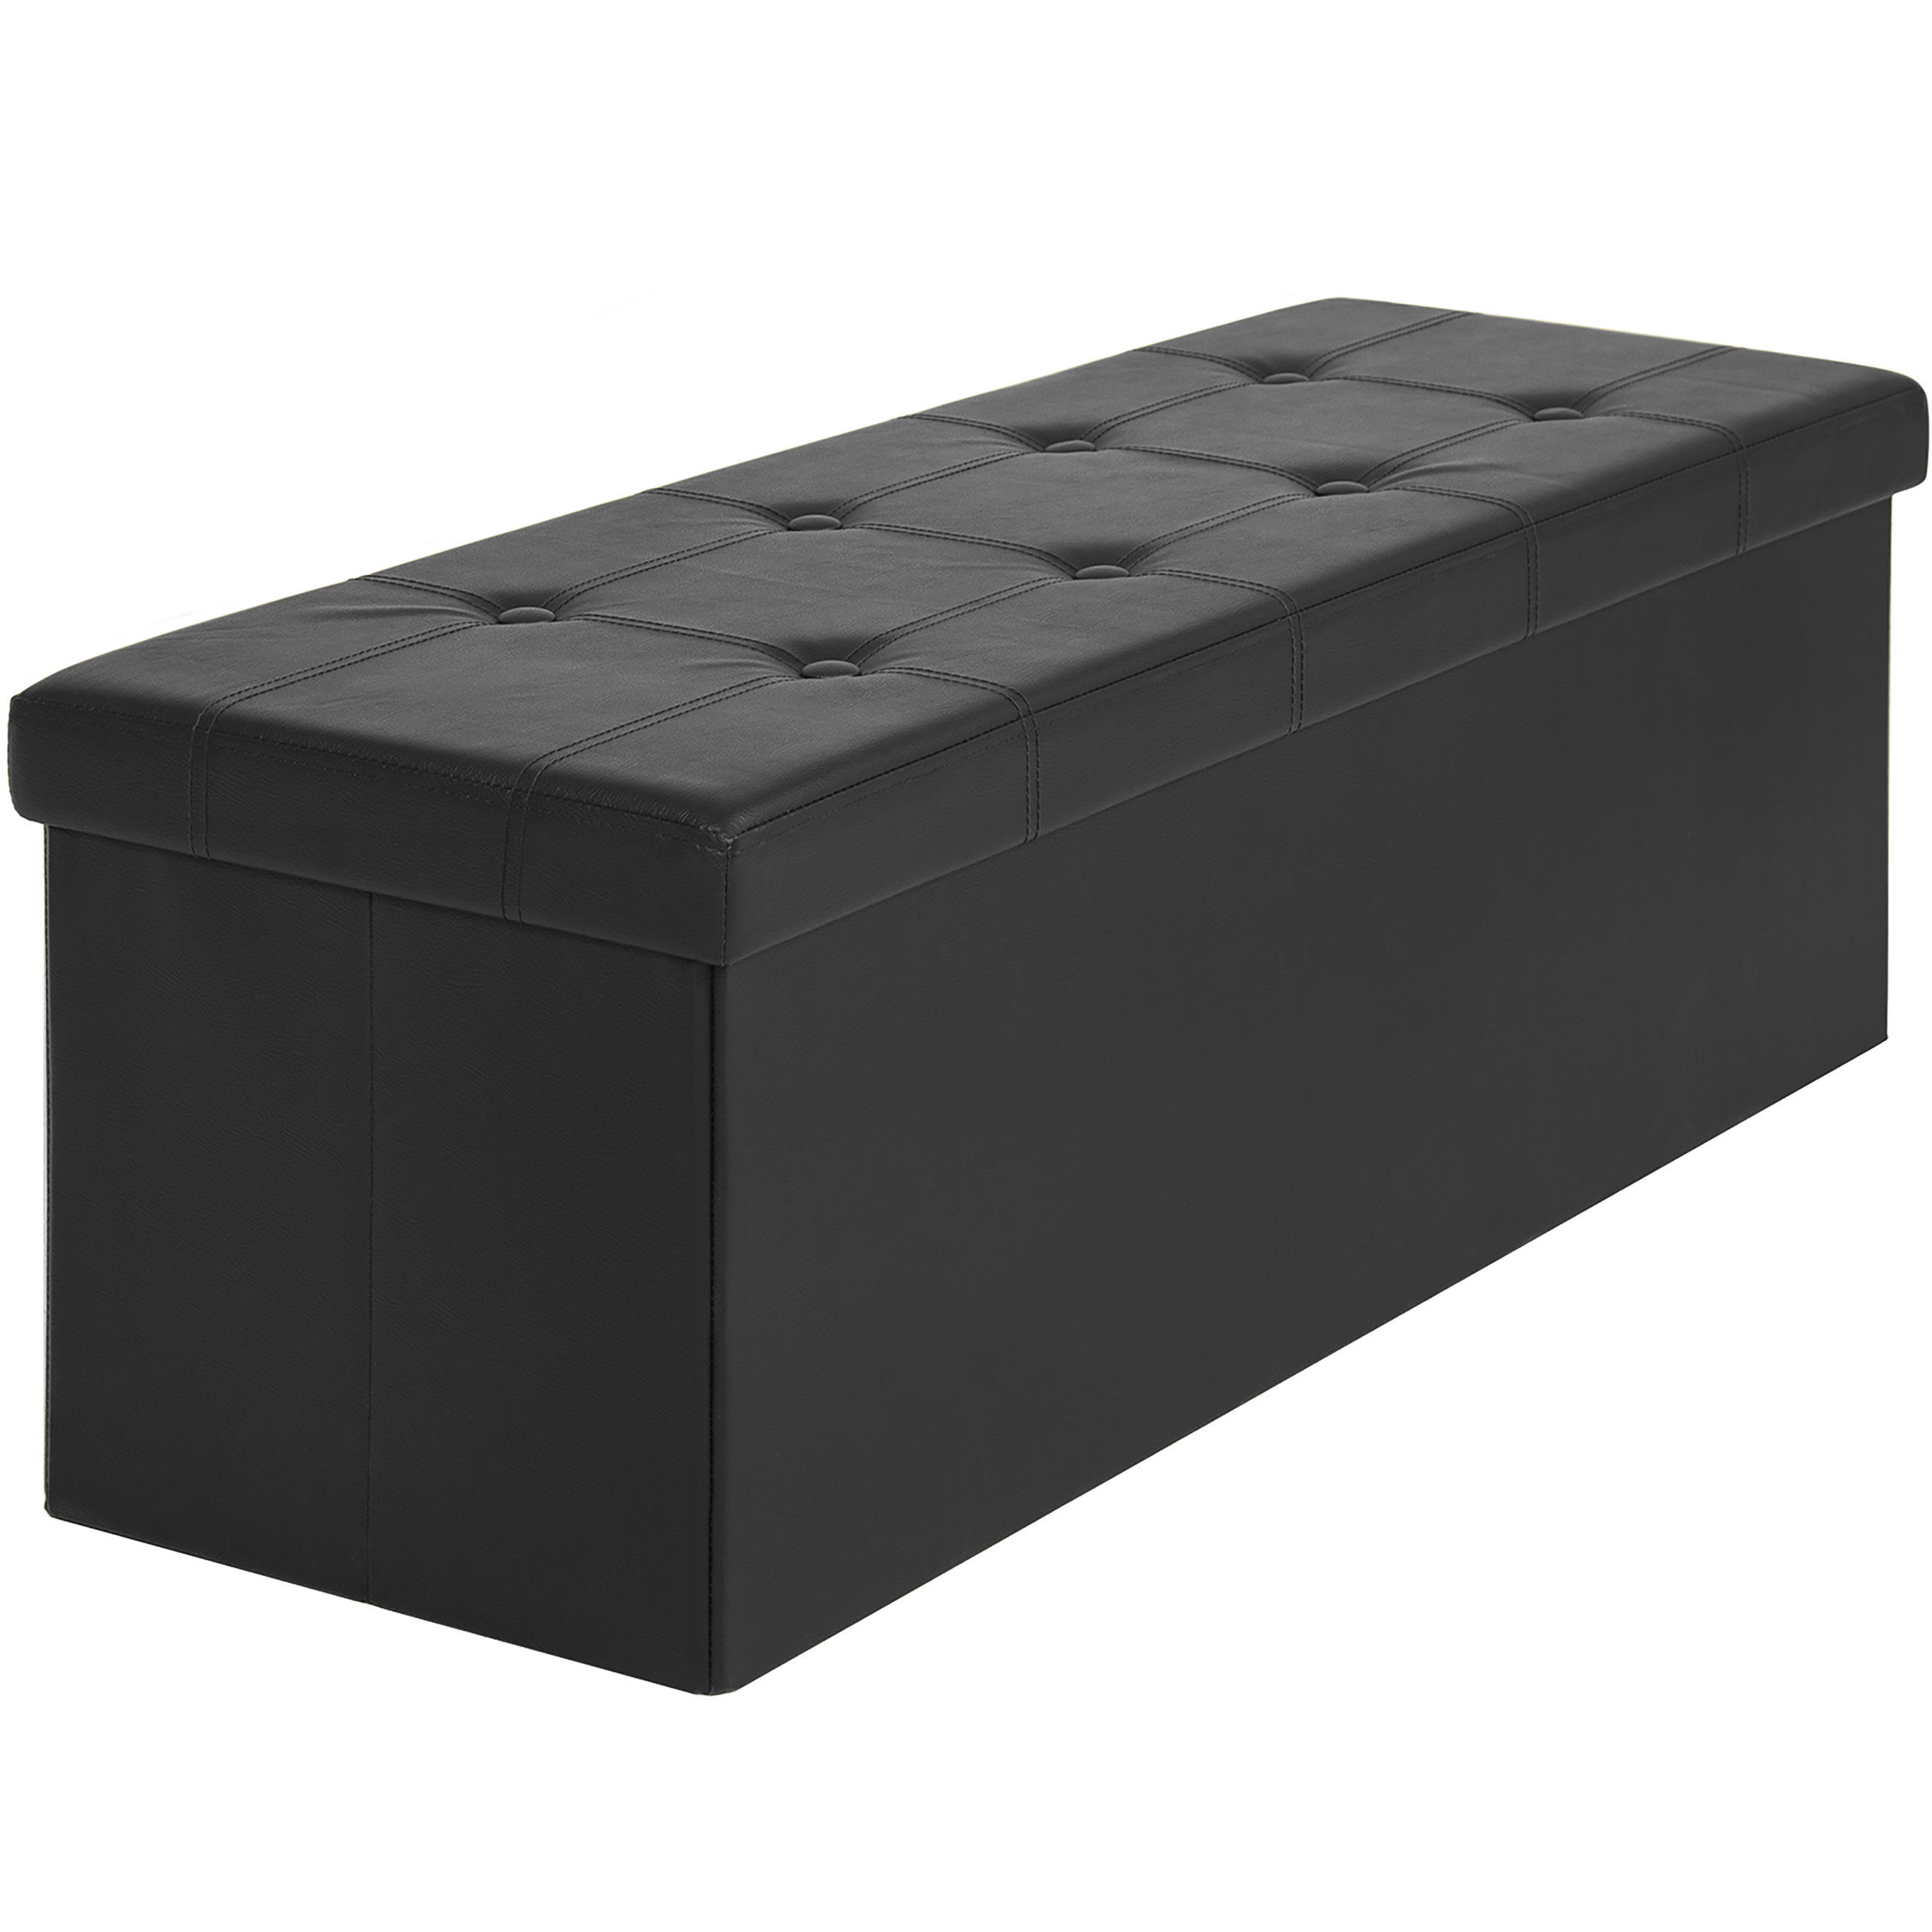 Attirant Best Choice Products Faux Leather Space Saving Folding Storage Ottoman  Stool Seat Bench W/ Velcro Divider   Black   Walmart.com